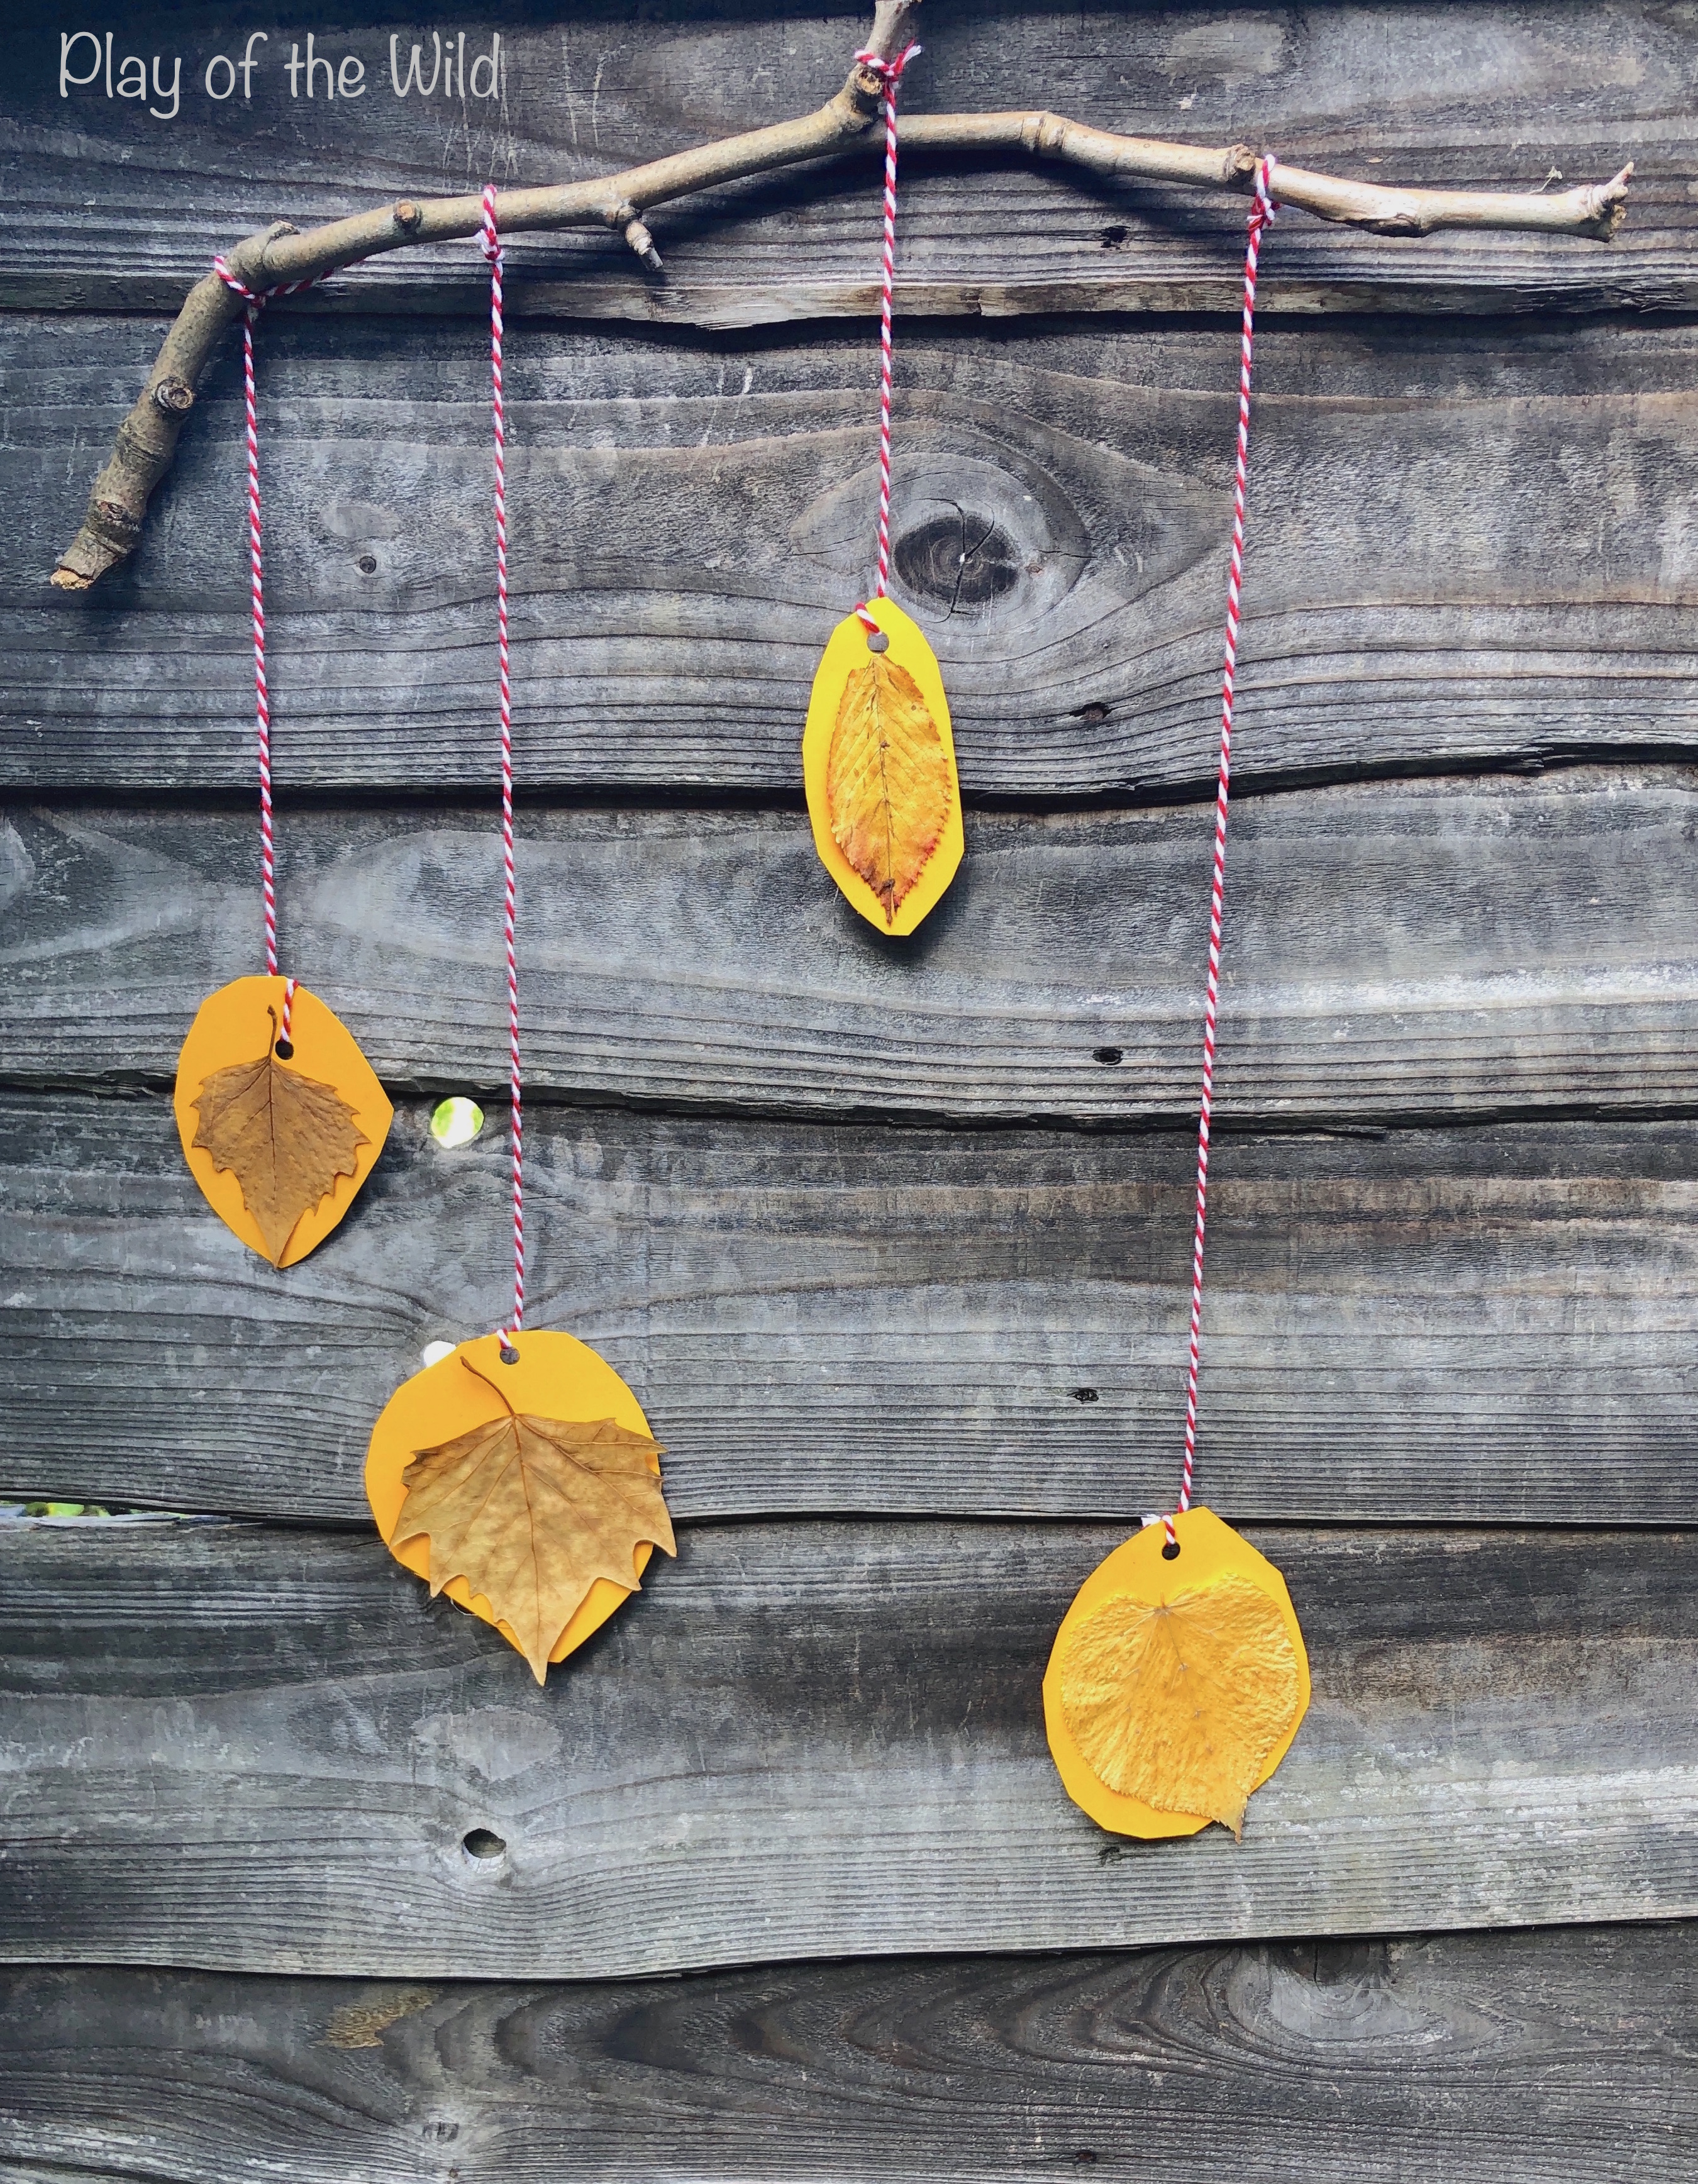 Simple fall leaf mobile made by young child.